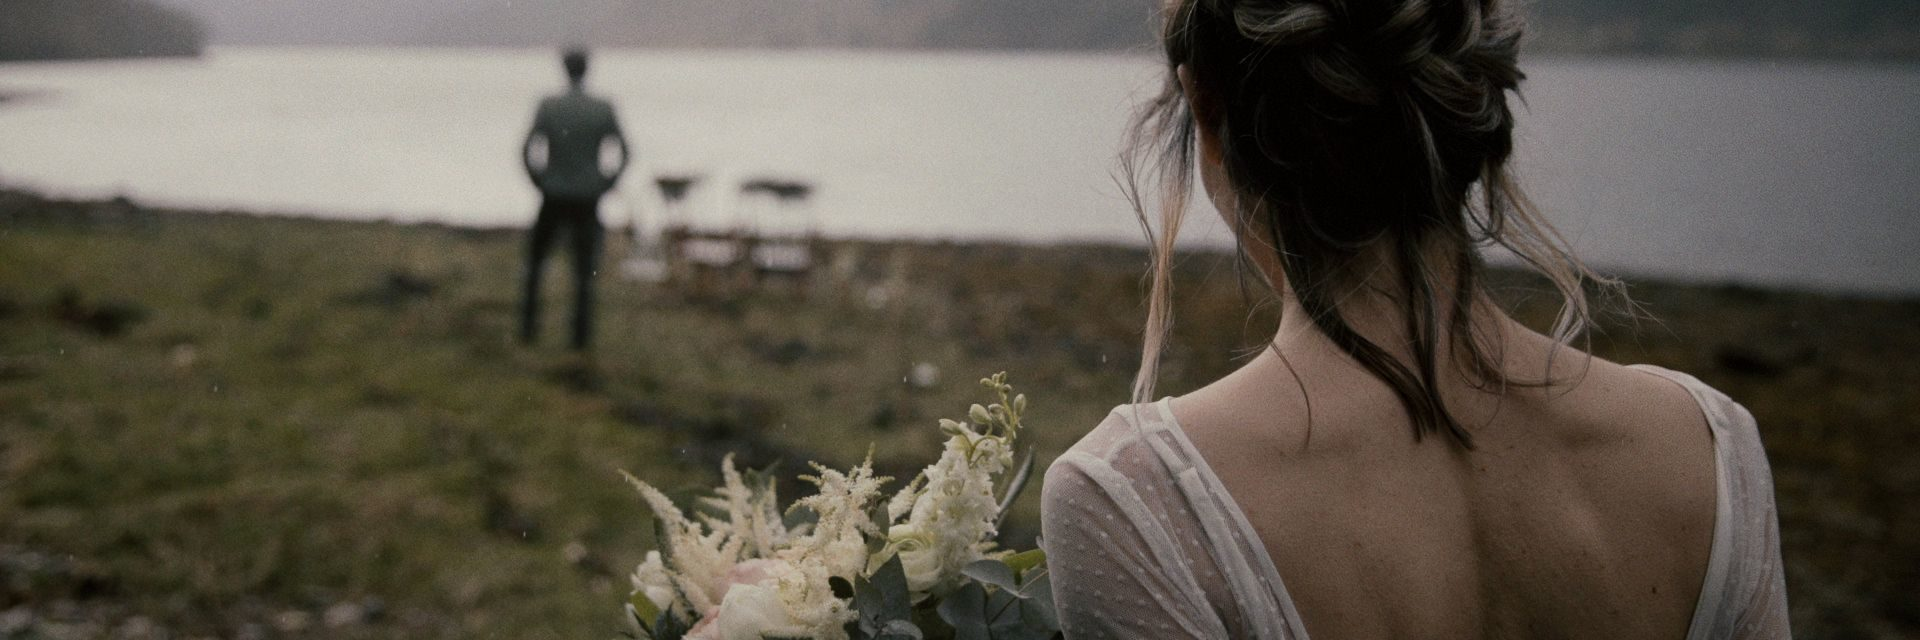 Rhodes-wedding-videographer-cinemate-films-02